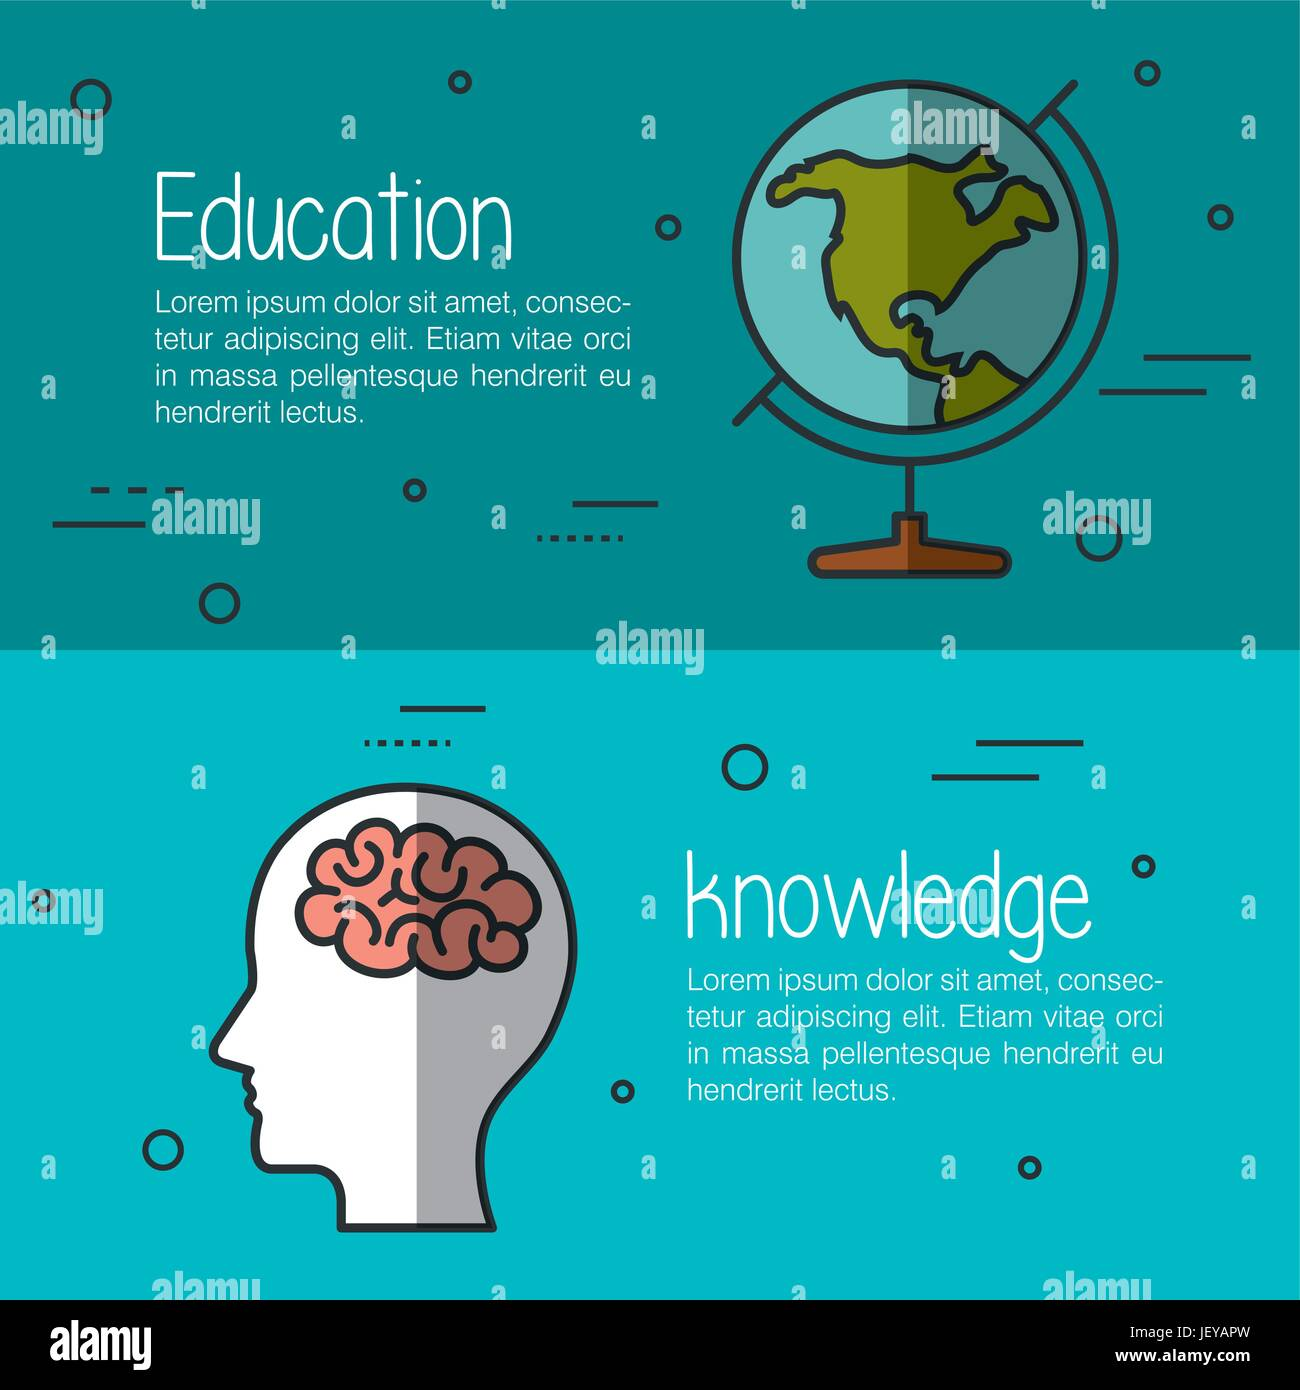 Education related design - Stock Image